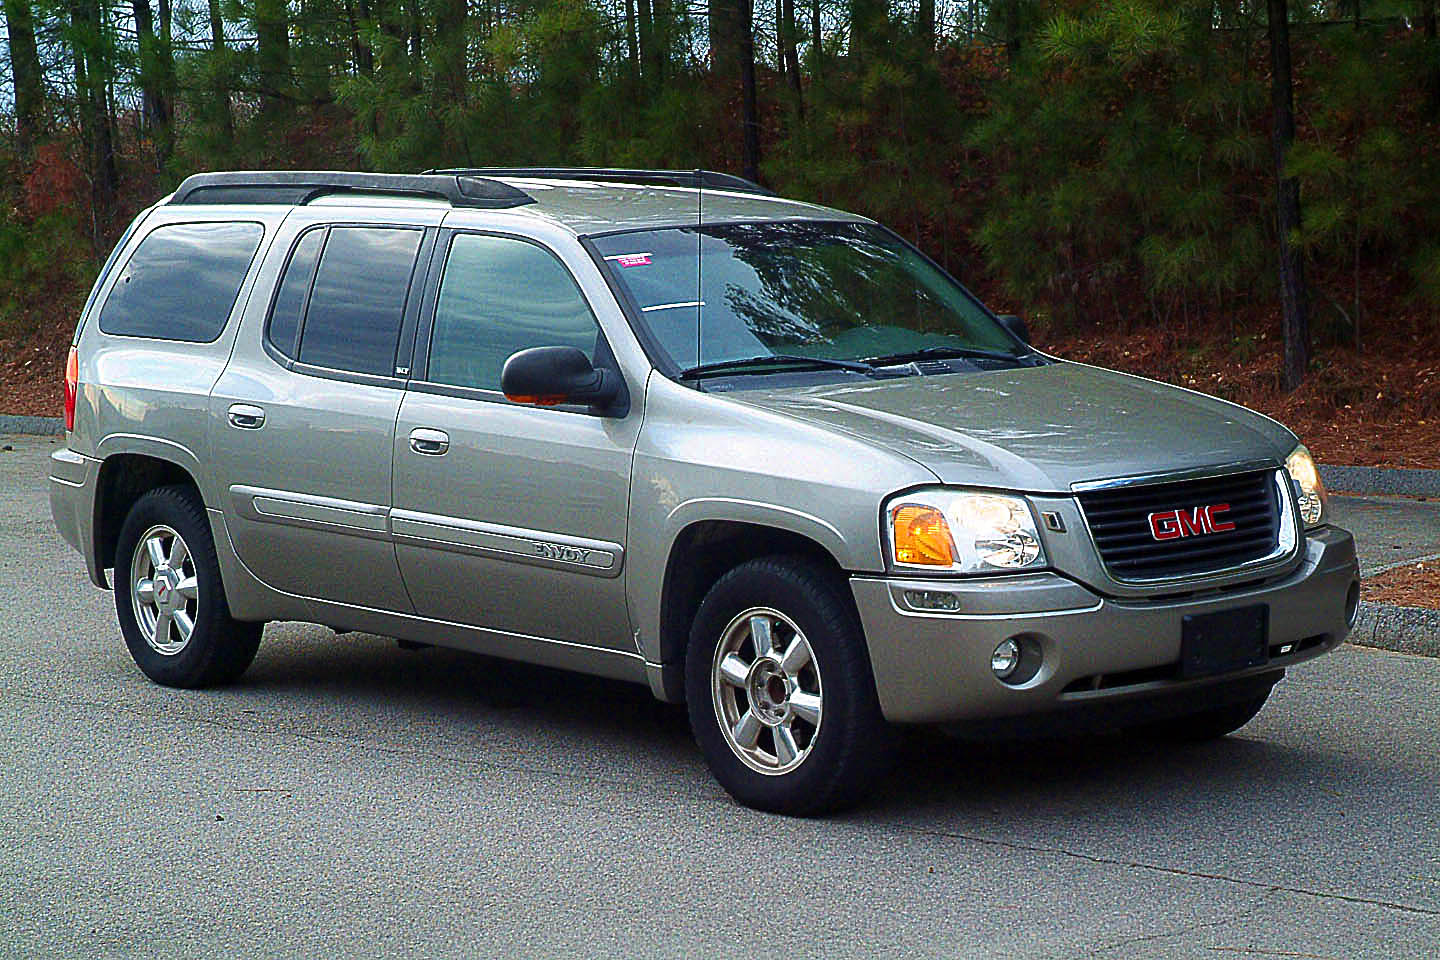 2003 gmc envoy information and photos zombiedrive. Black Bedroom Furniture Sets. Home Design Ideas